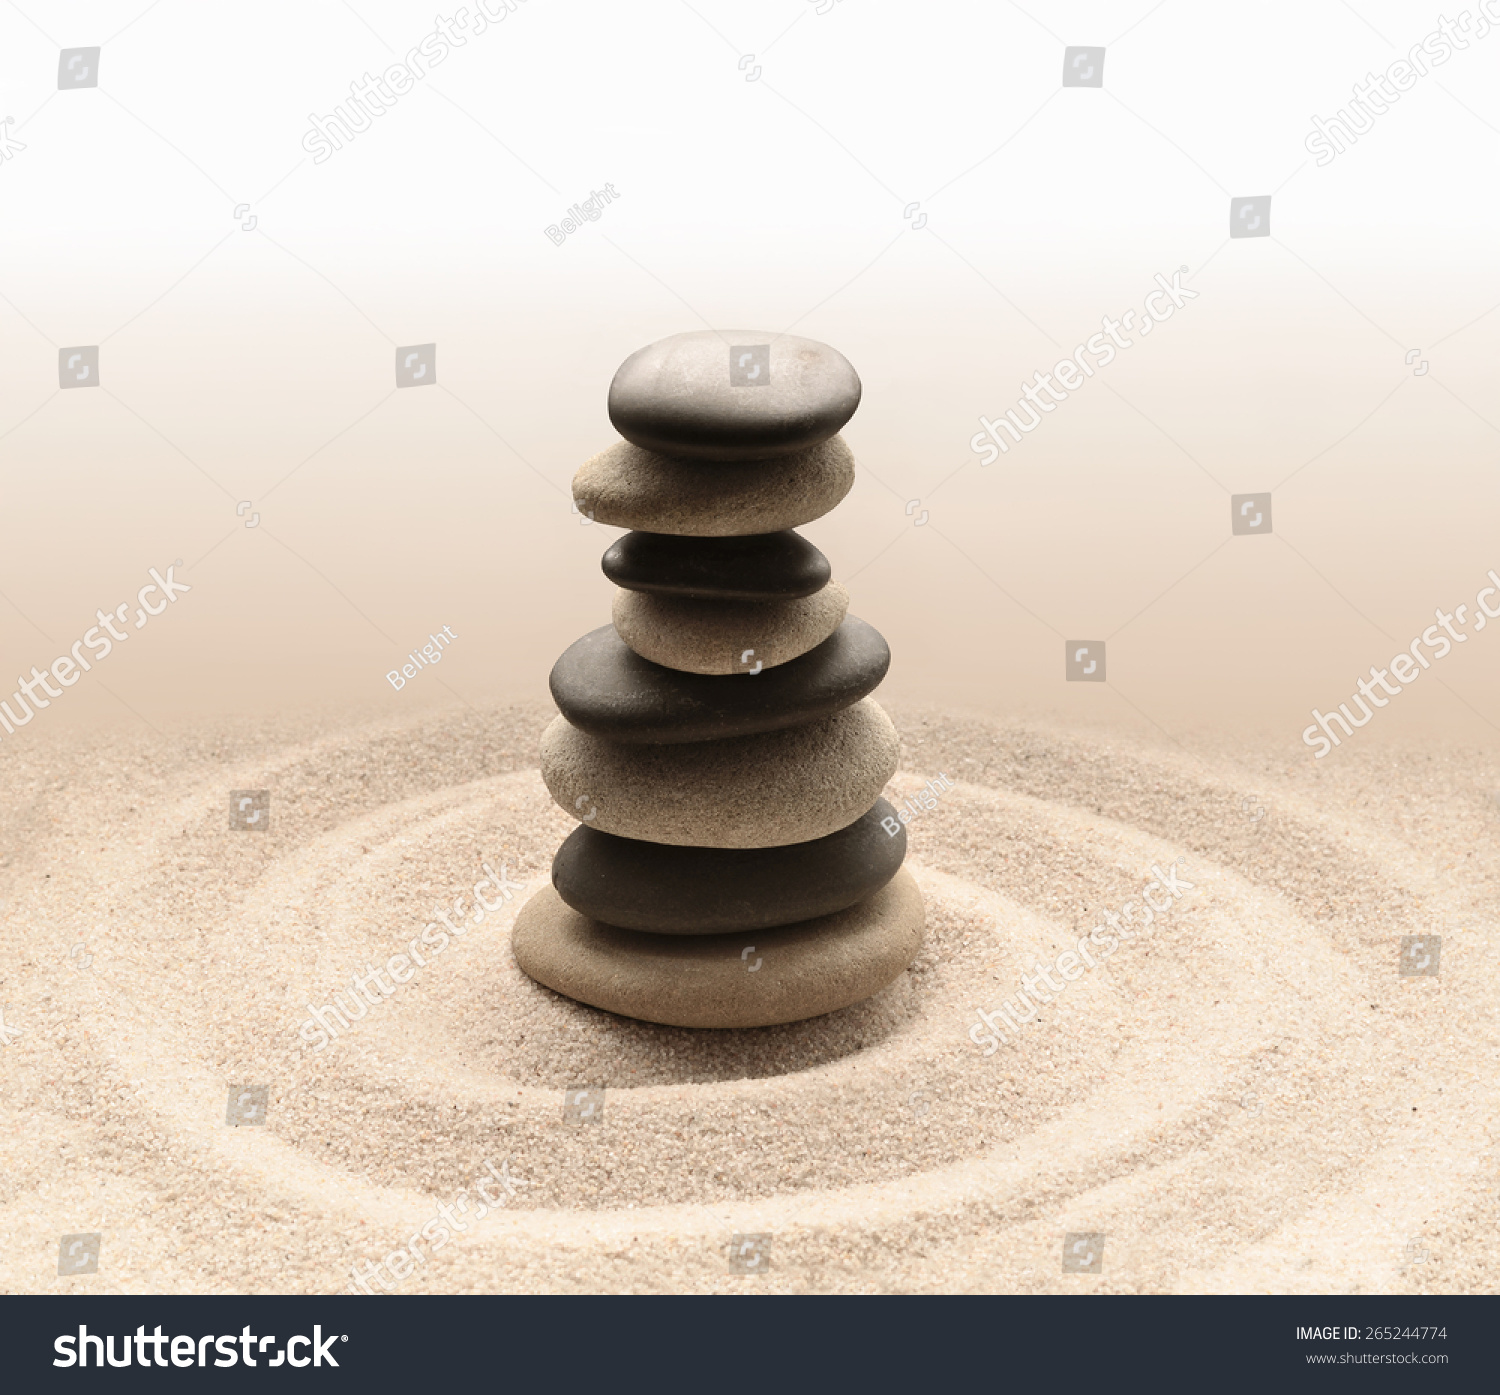 zen garden meditation stone for concentration and relaxation sand and rock for harmony and. Black Bedroom Furniture Sets. Home Design Ideas